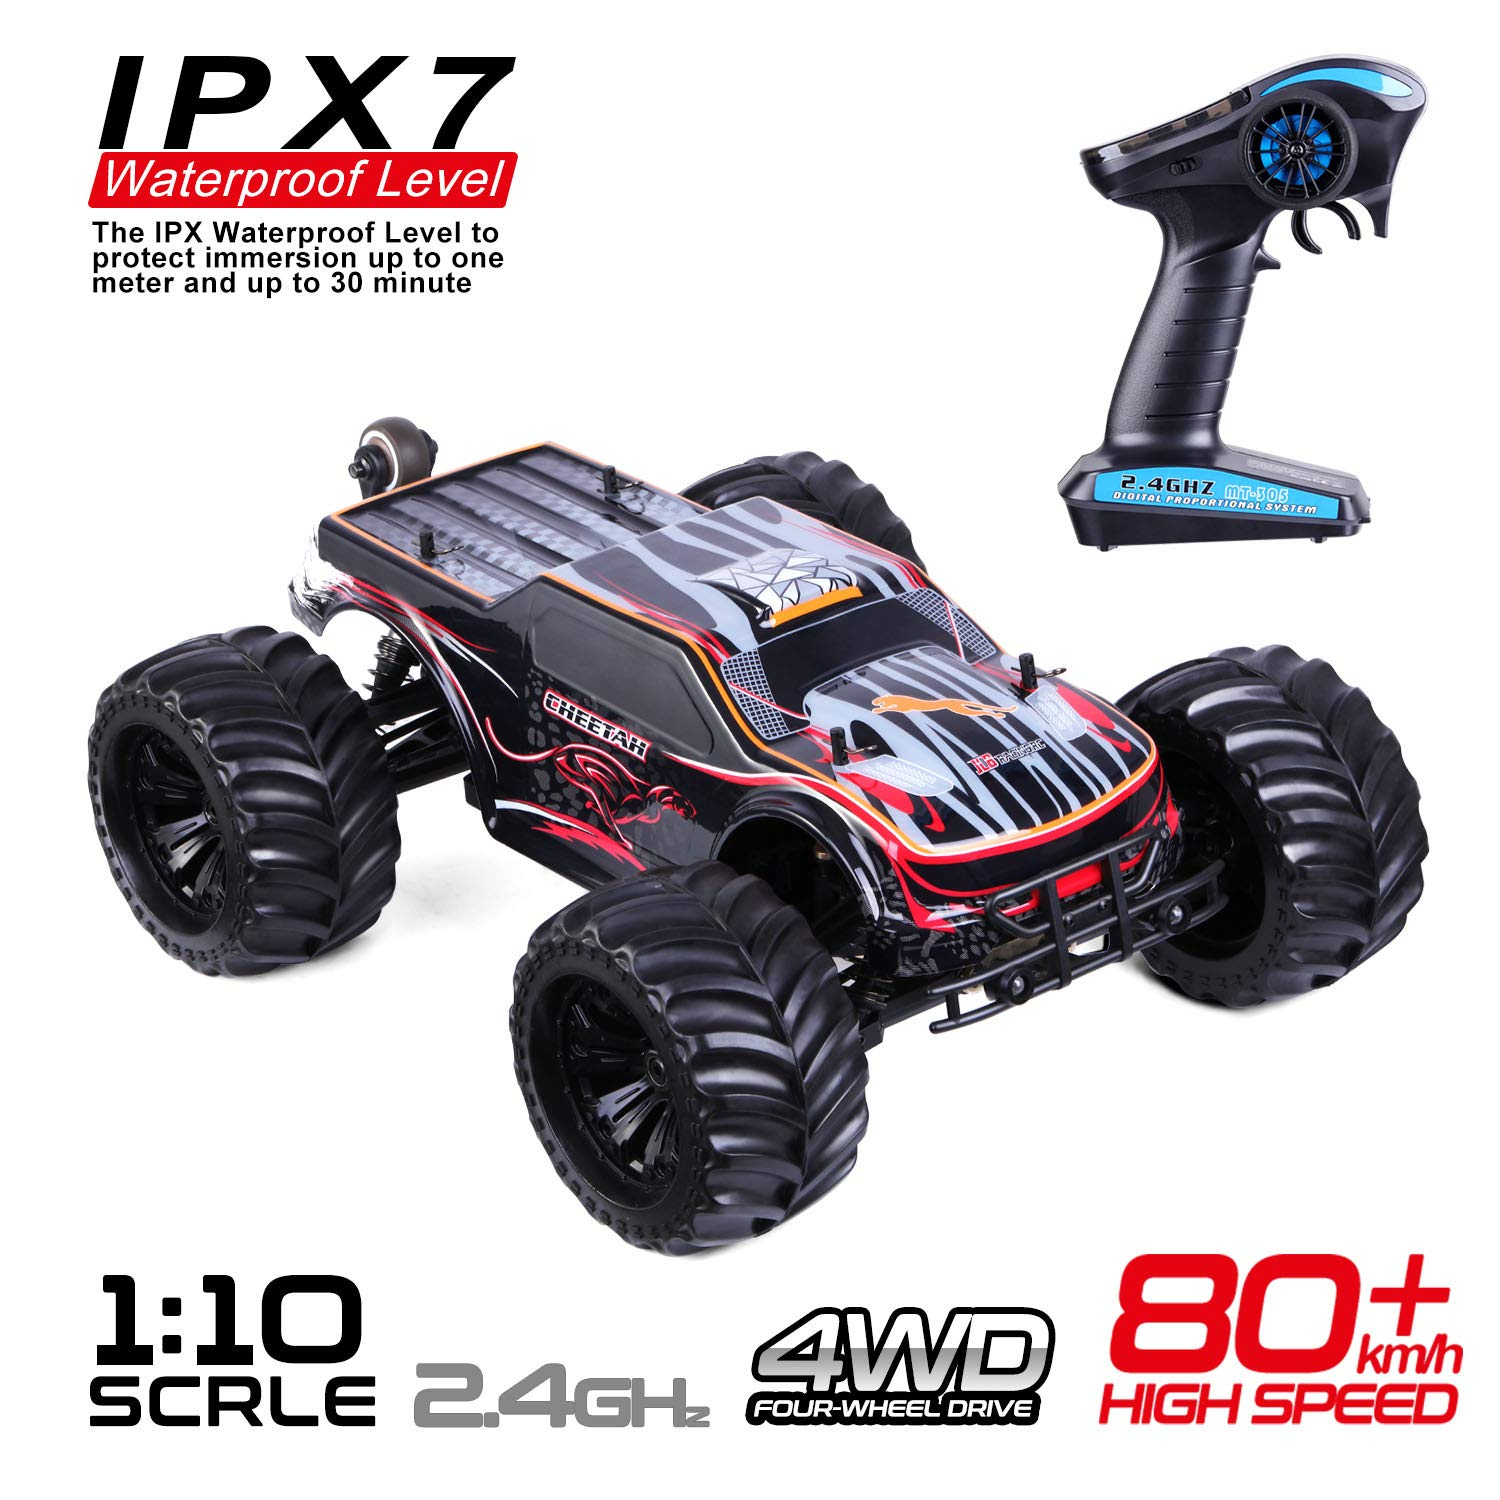 JLBRACINGRC Super Fast 1/10 Scale Cheetah RC Car, 80 KM/H 4WD 2.4GHZ RC Truck with 120A ESC IPX7 Waterproof 3670 2500KV Brushless Motor Wheelie Function 4x4 Off Road RTR RC Monster Truck for Adults